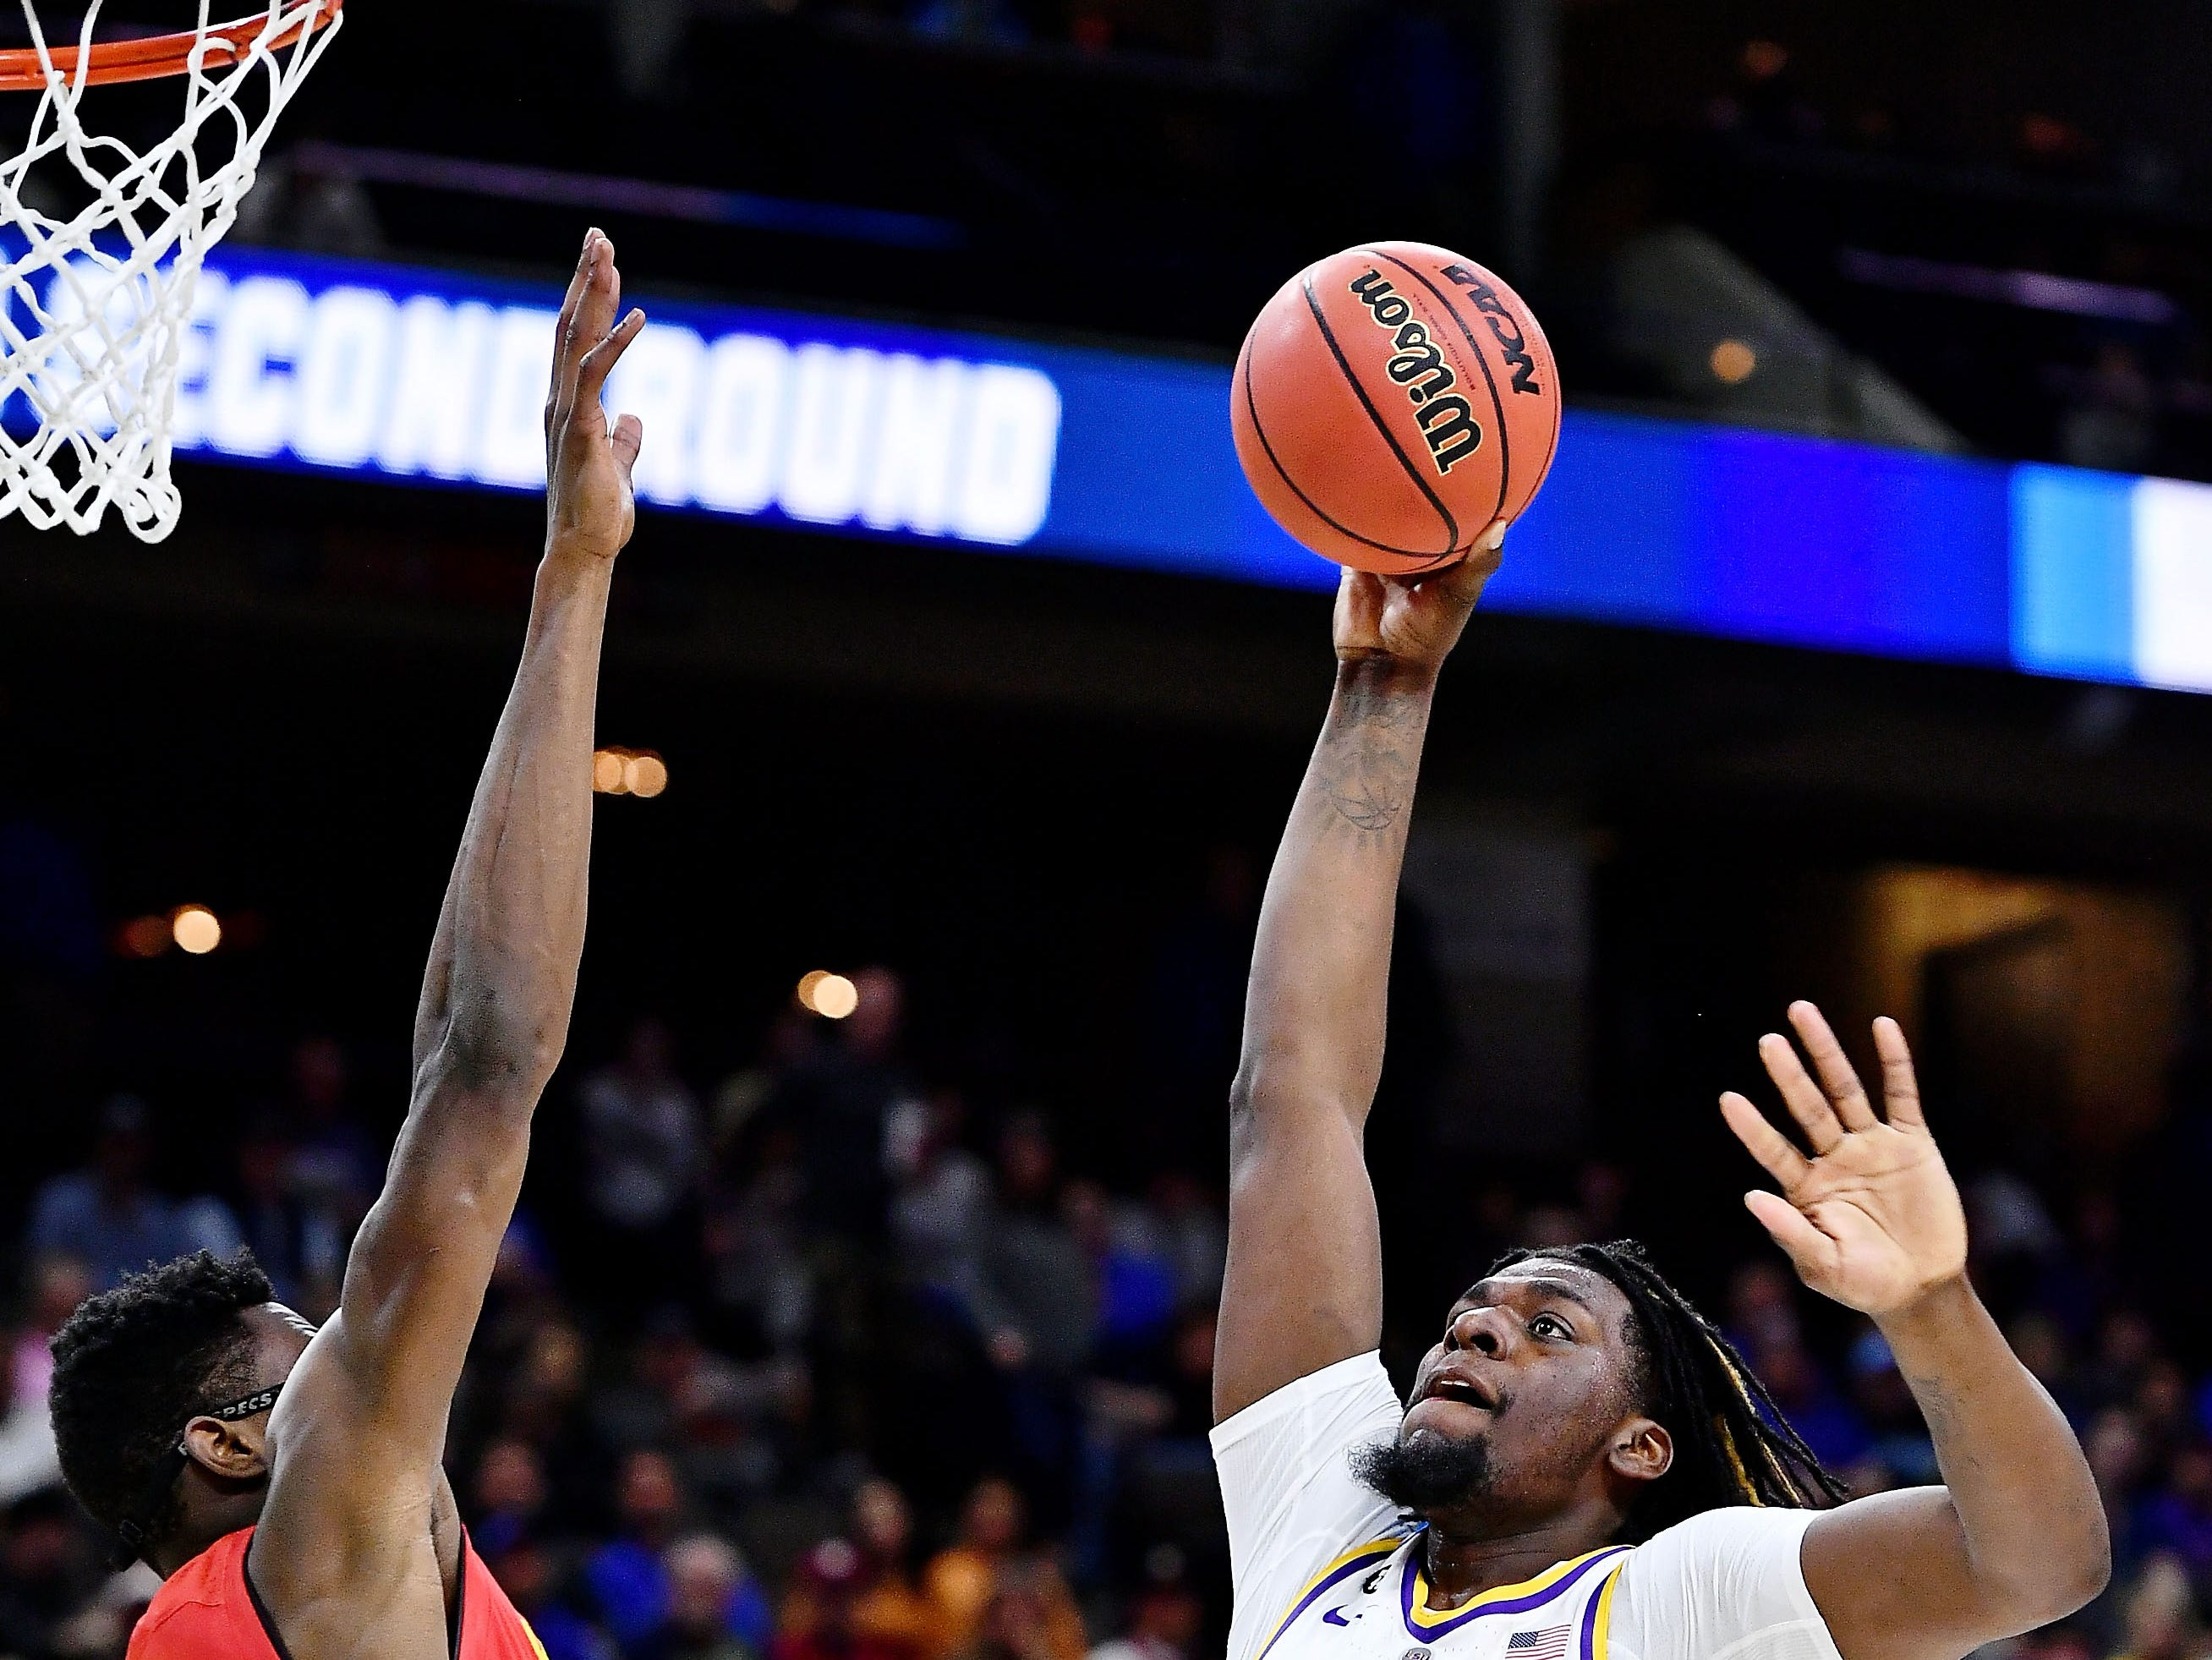 LSU Tigers forward Naz Reid (0) shoots against Maryland Terrapins forward Jalen Smith (25) during the first half in the second round of the 2019 NCAA Tournament at Jacksonville Veterans Memorial Arena.